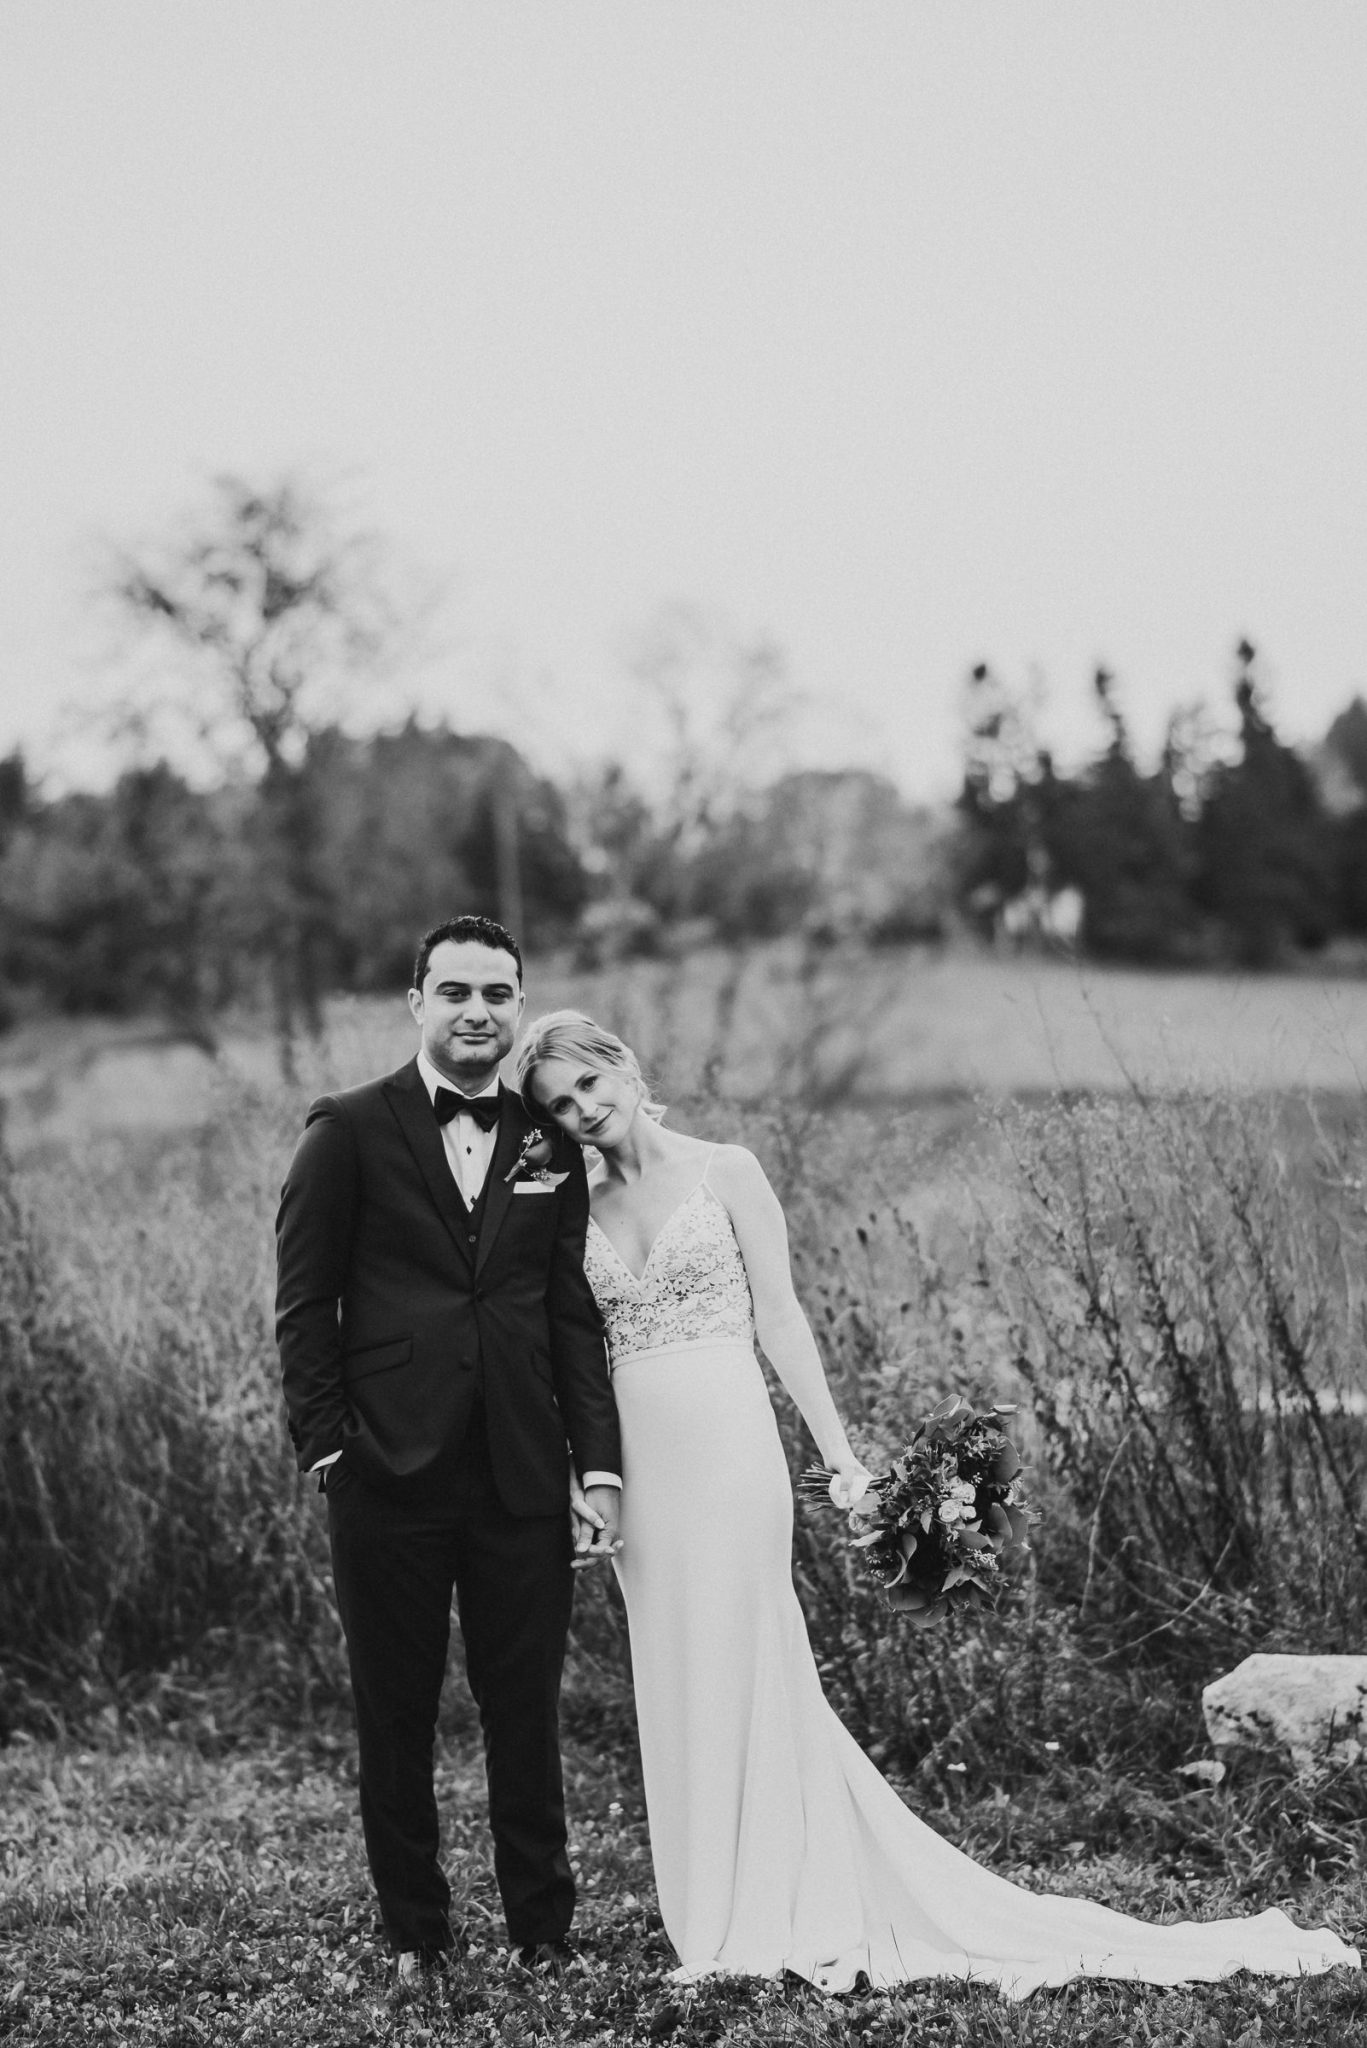 Waterstone Estate & Farms Wedding - newlywed portrait